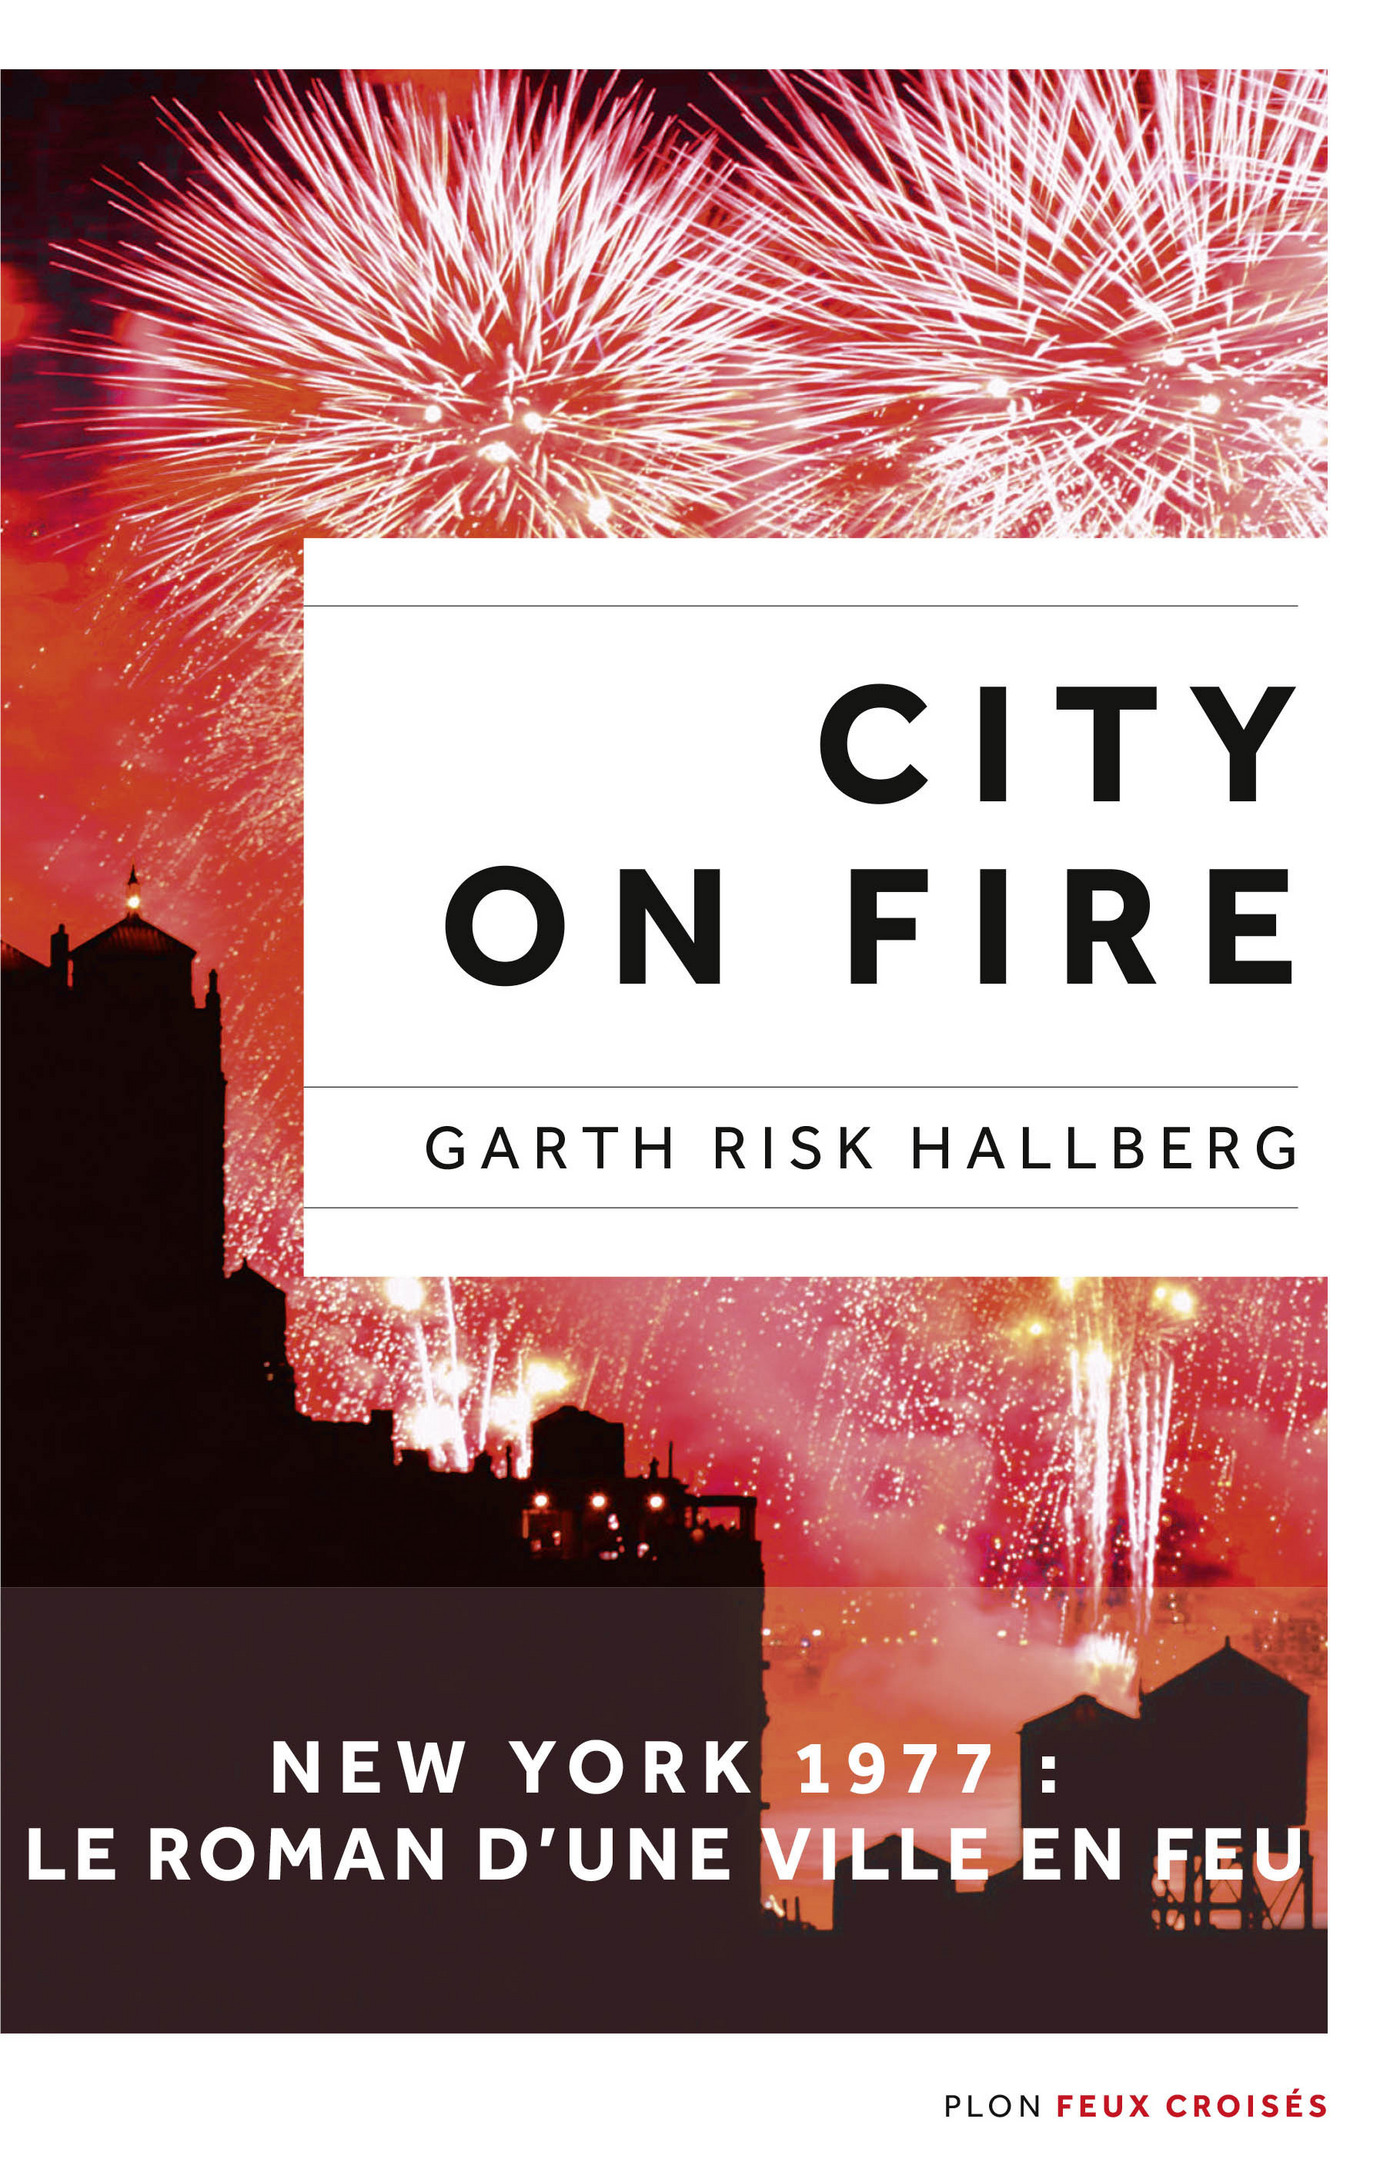 Couverture : City on fire Garth Risk Hallberg